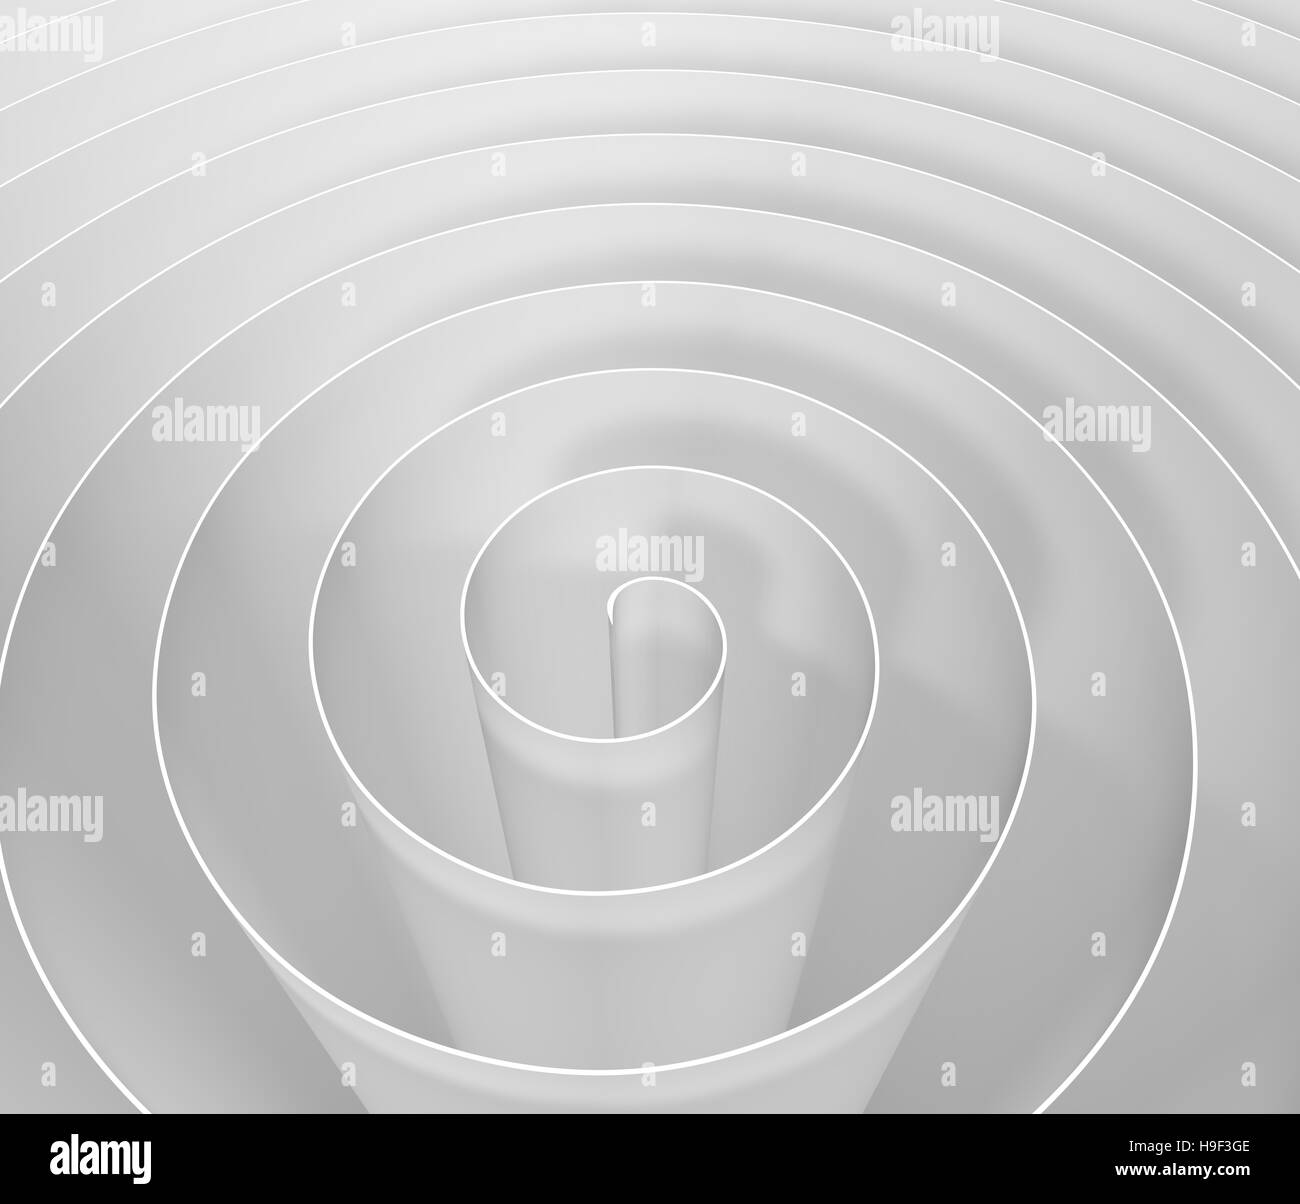 White 3D spiral , digital abstract background pattern - Stock Image